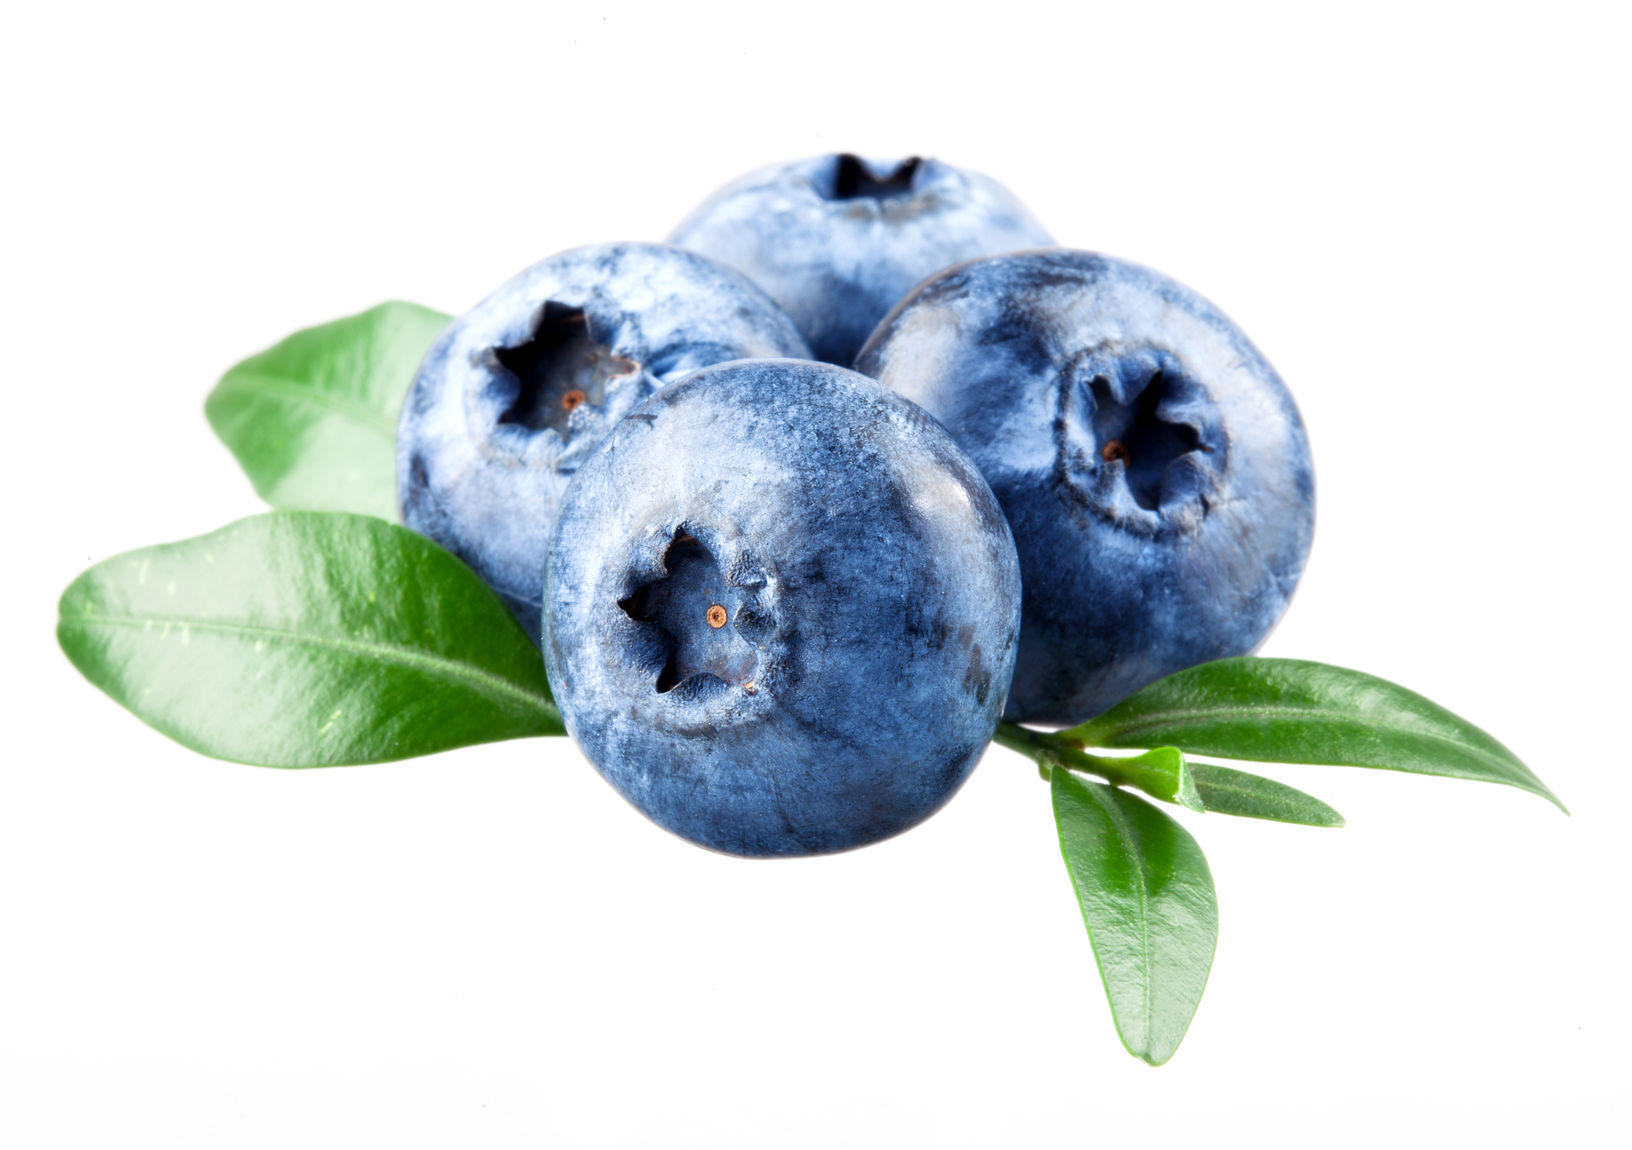 blueberry prevents depression in adolescents